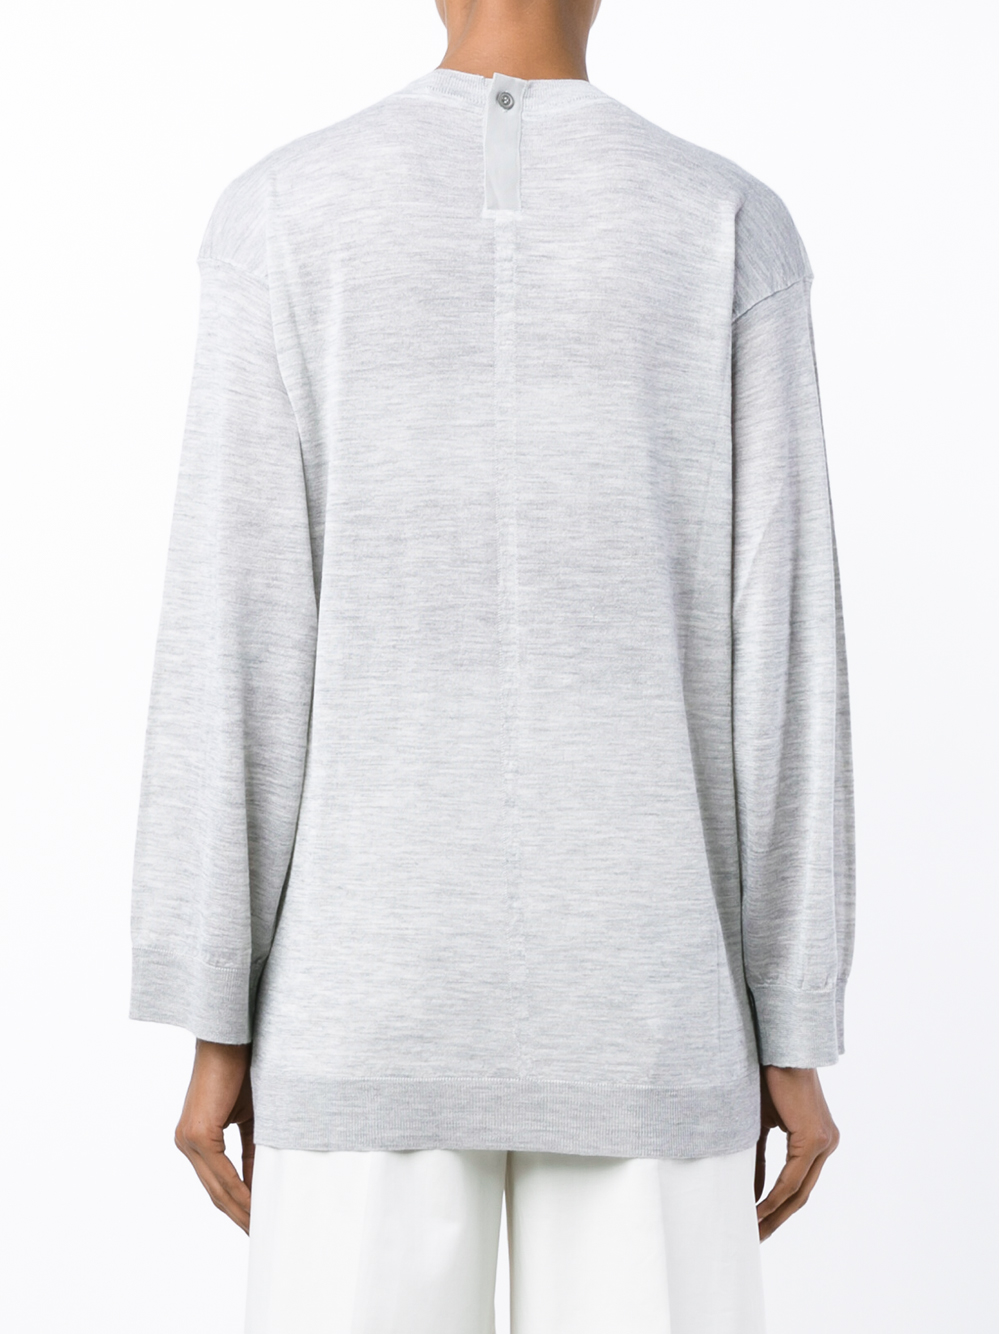 Adam lippes cashmere and silk sweatshirt in gray lyst for Adam lippes women s long sleeve vee t shirt